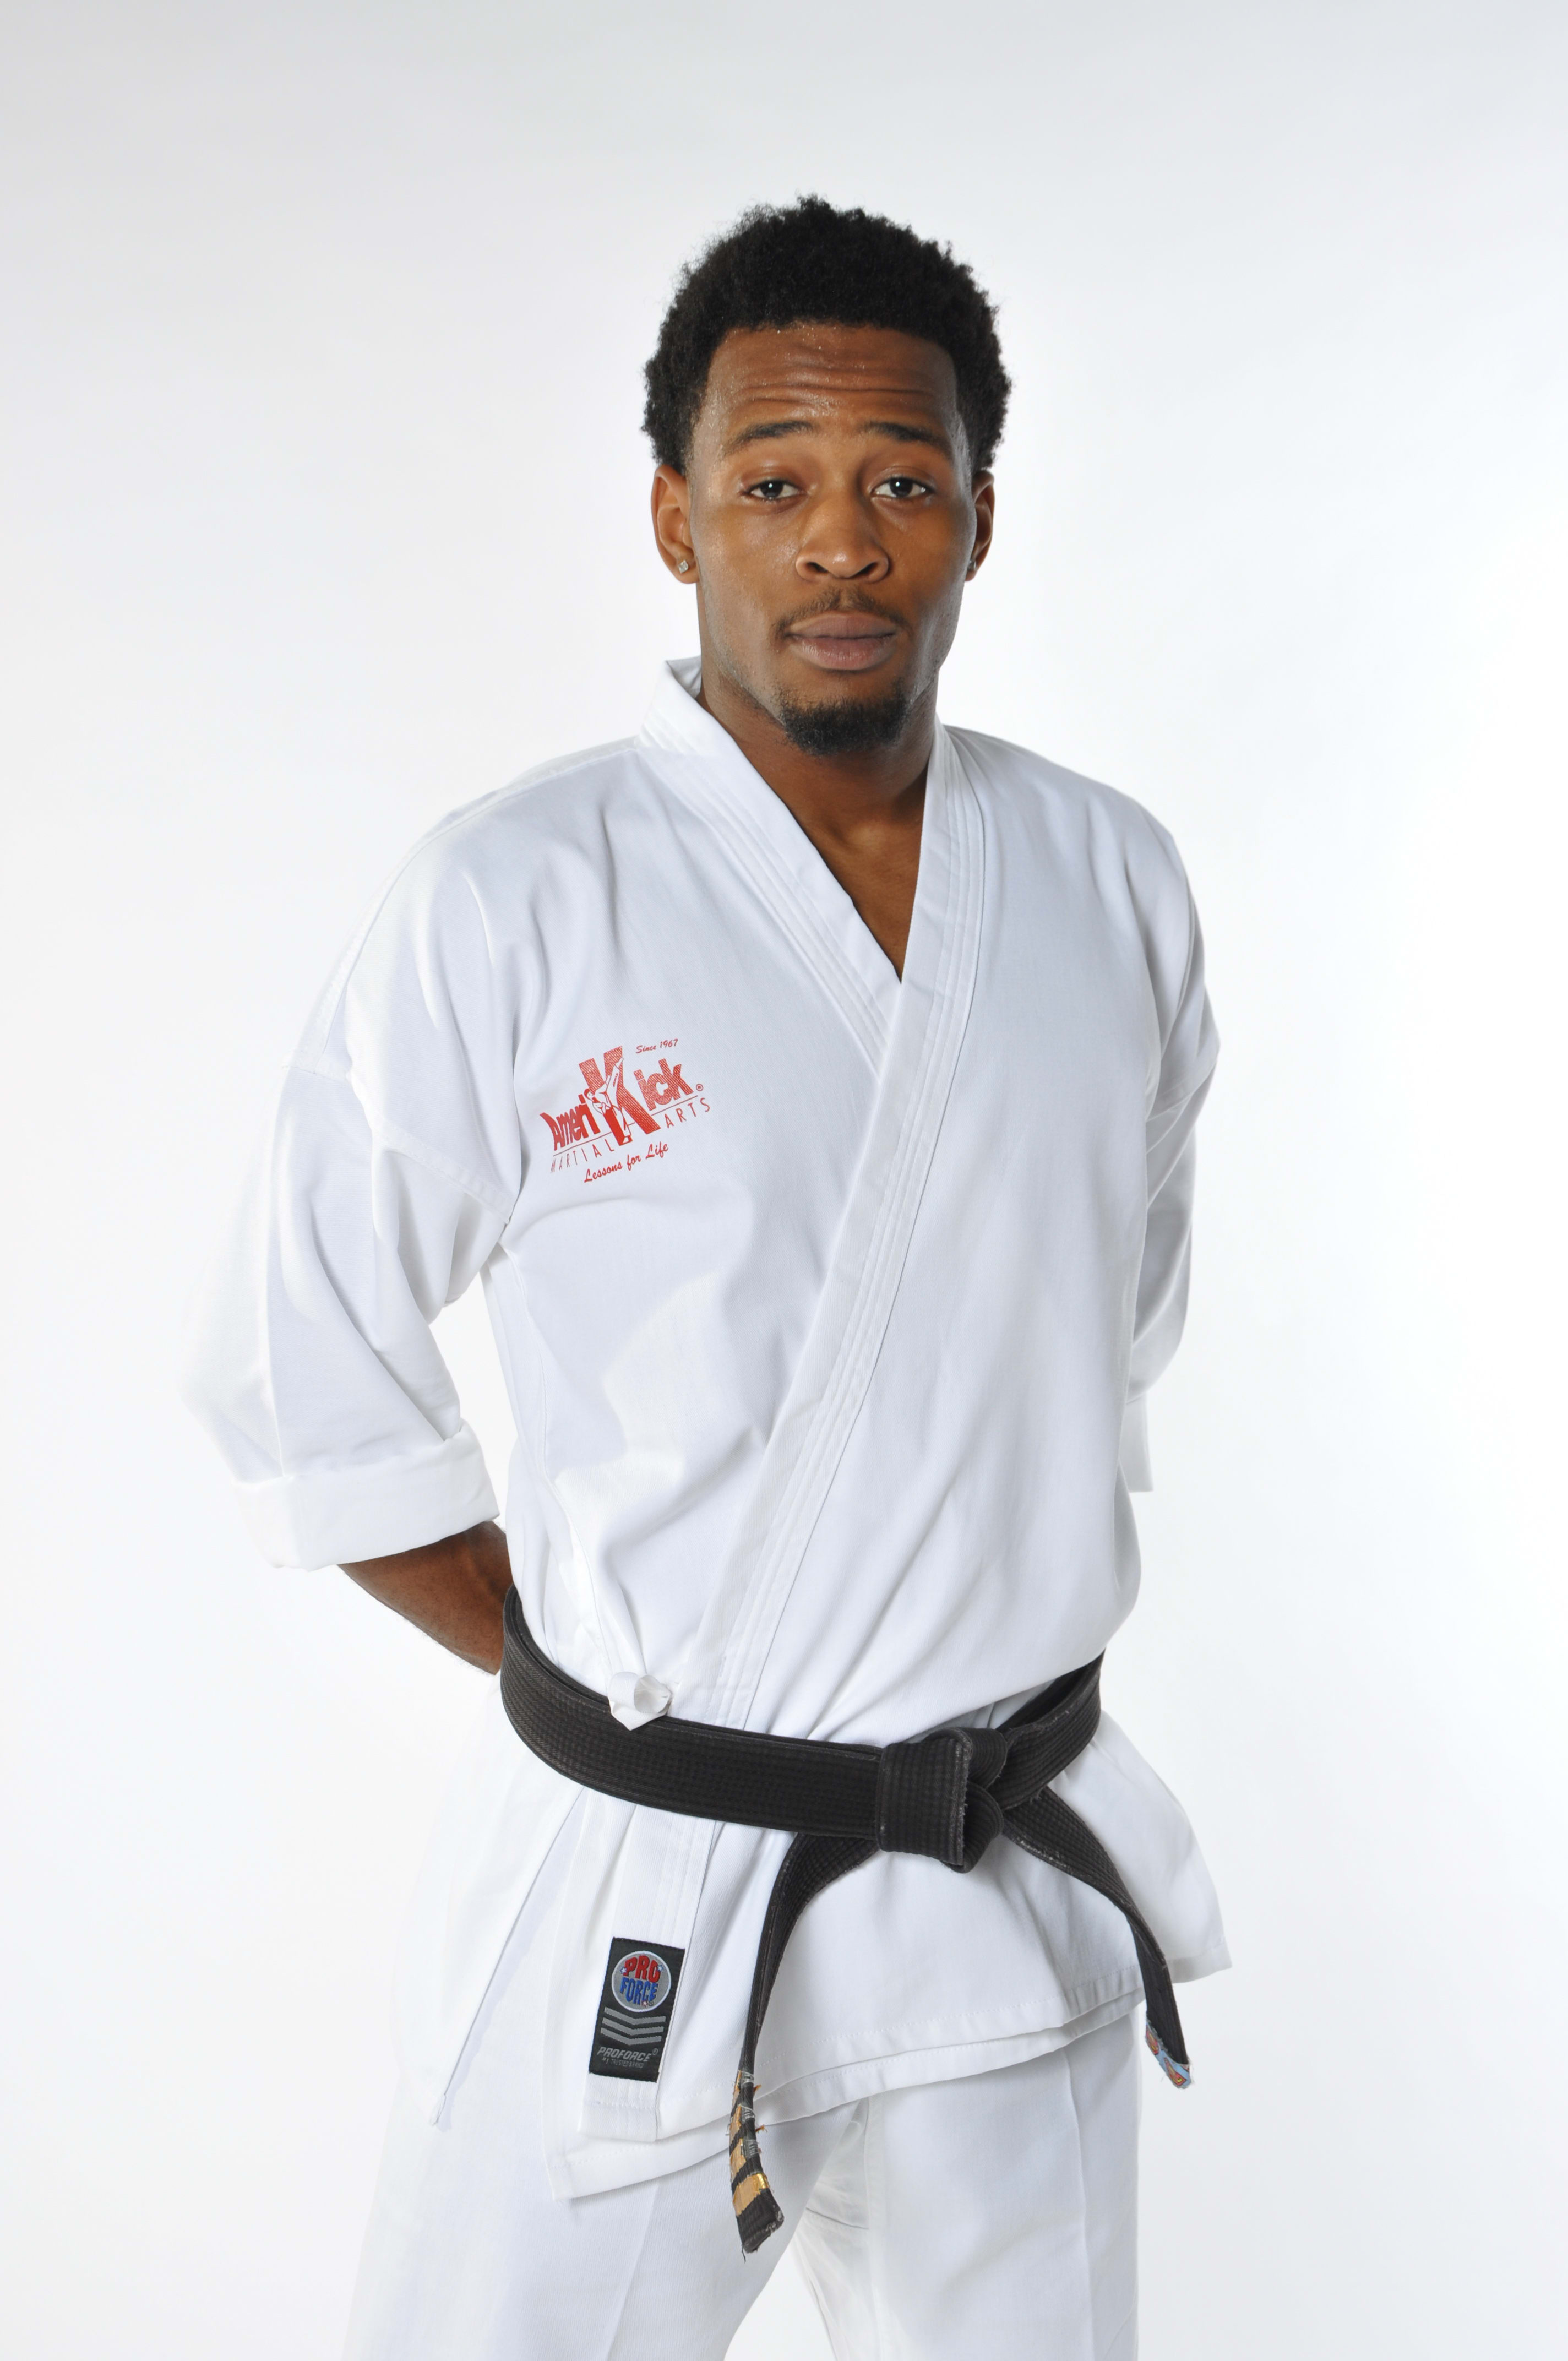 Steven McLaughlin in Philadelphia - Amerikick Martial Arts Northeast Philly